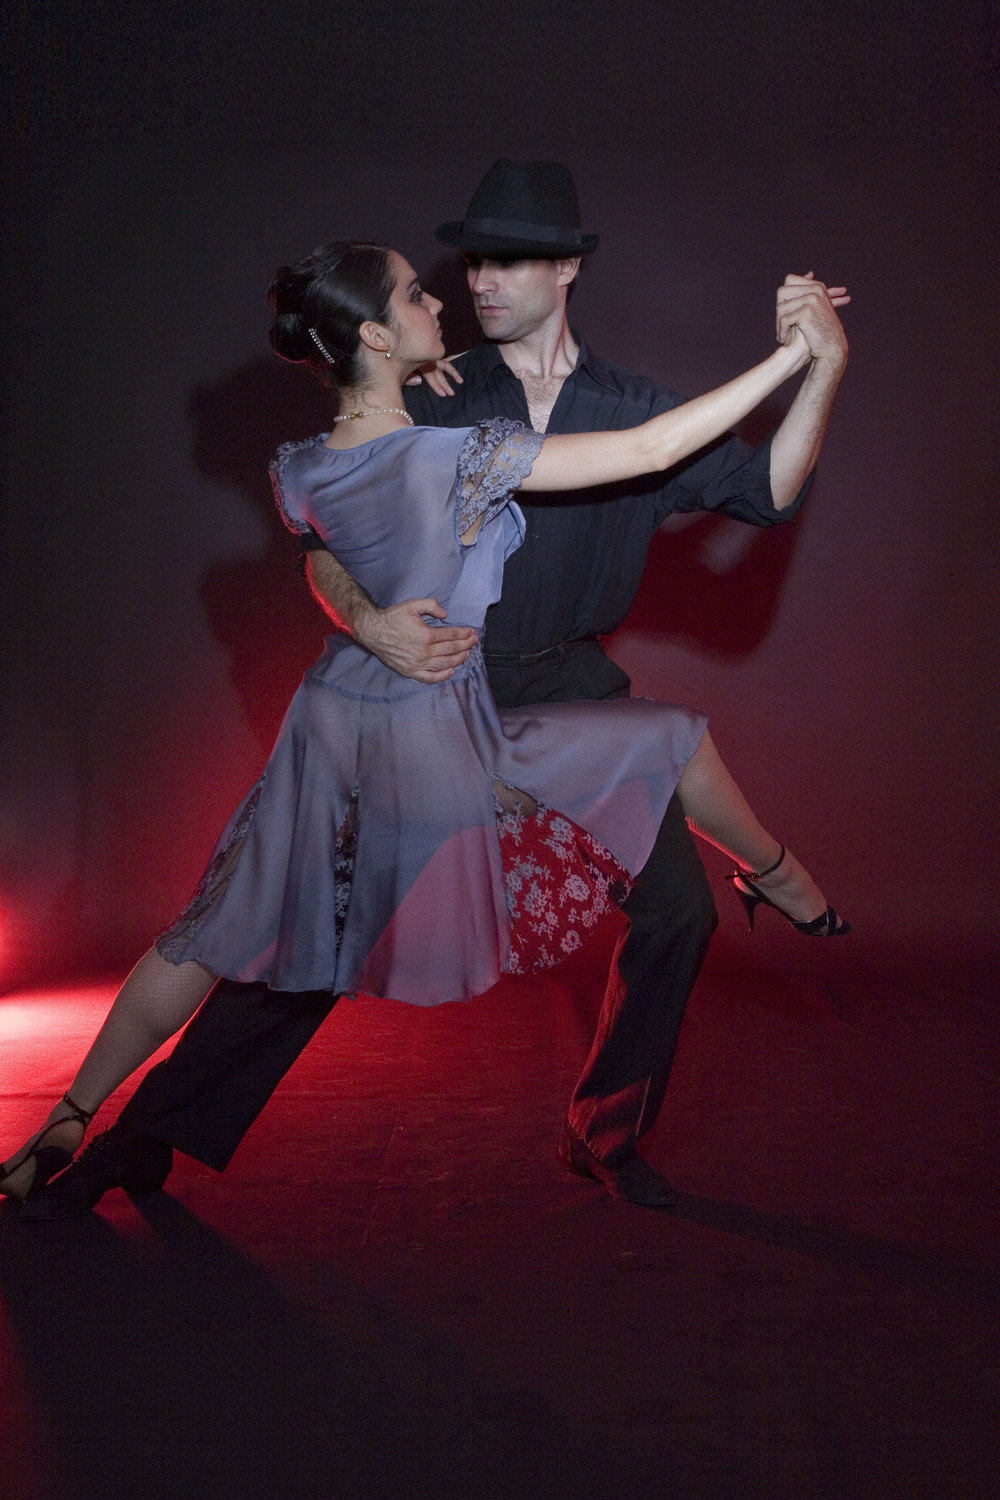 Tango Buenos Aires dances their way onto the Madison Theatre stage on Oct. 15.